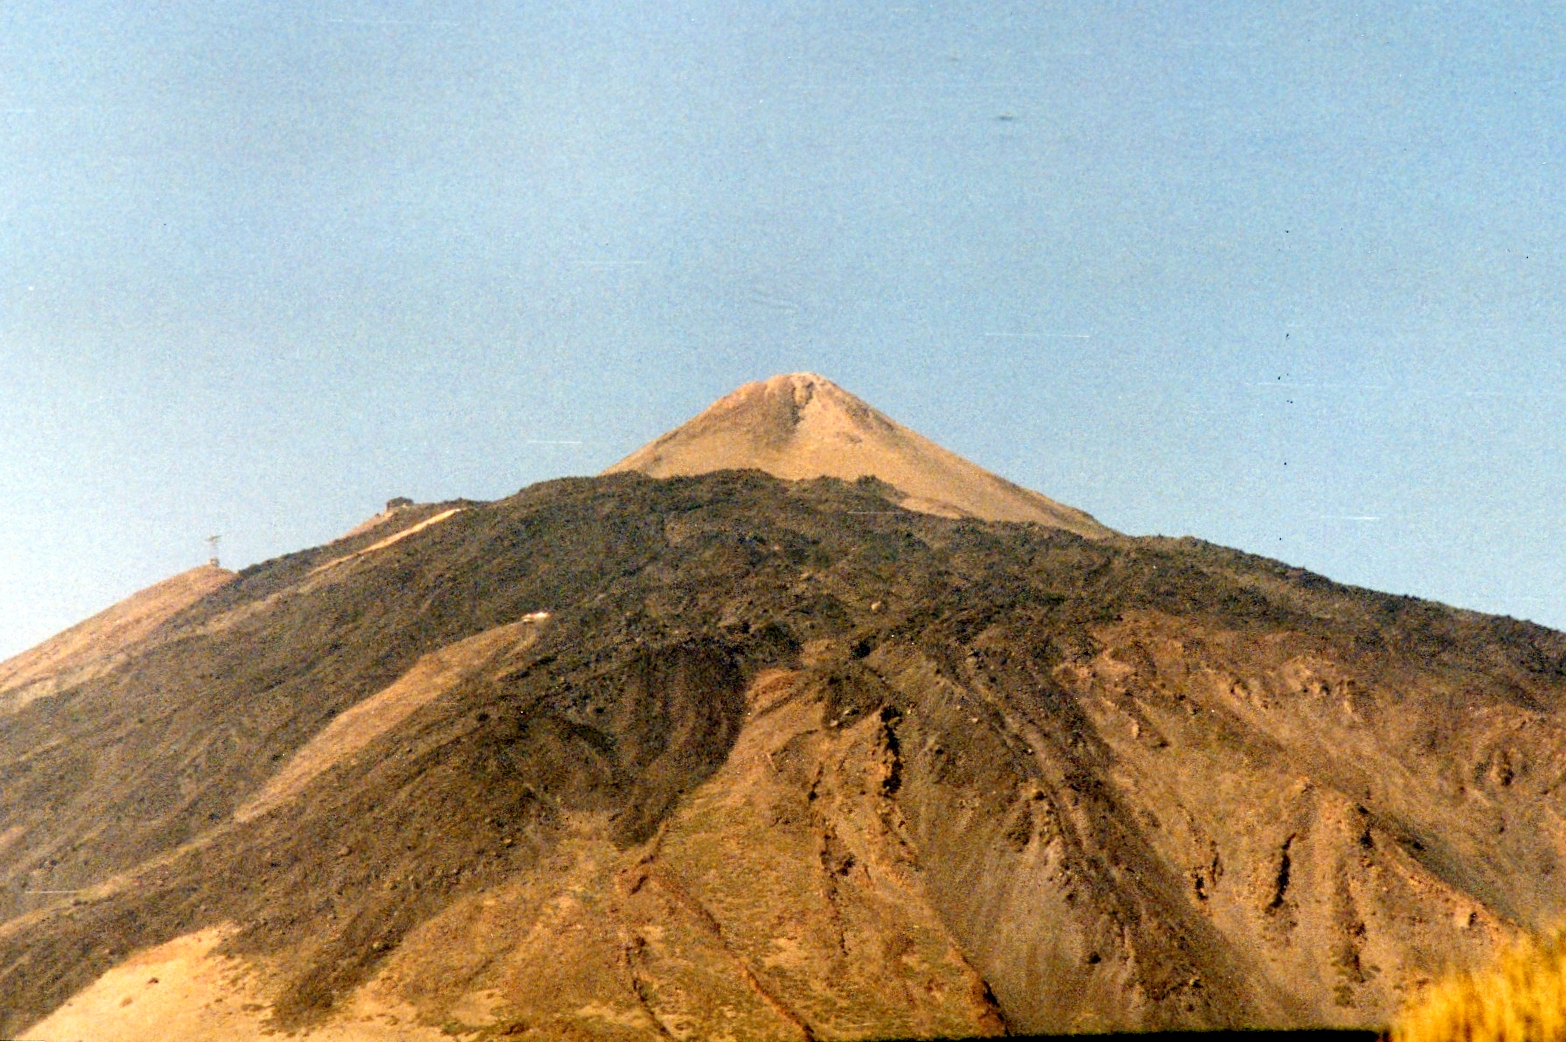 Summit of Teide, early 1980s